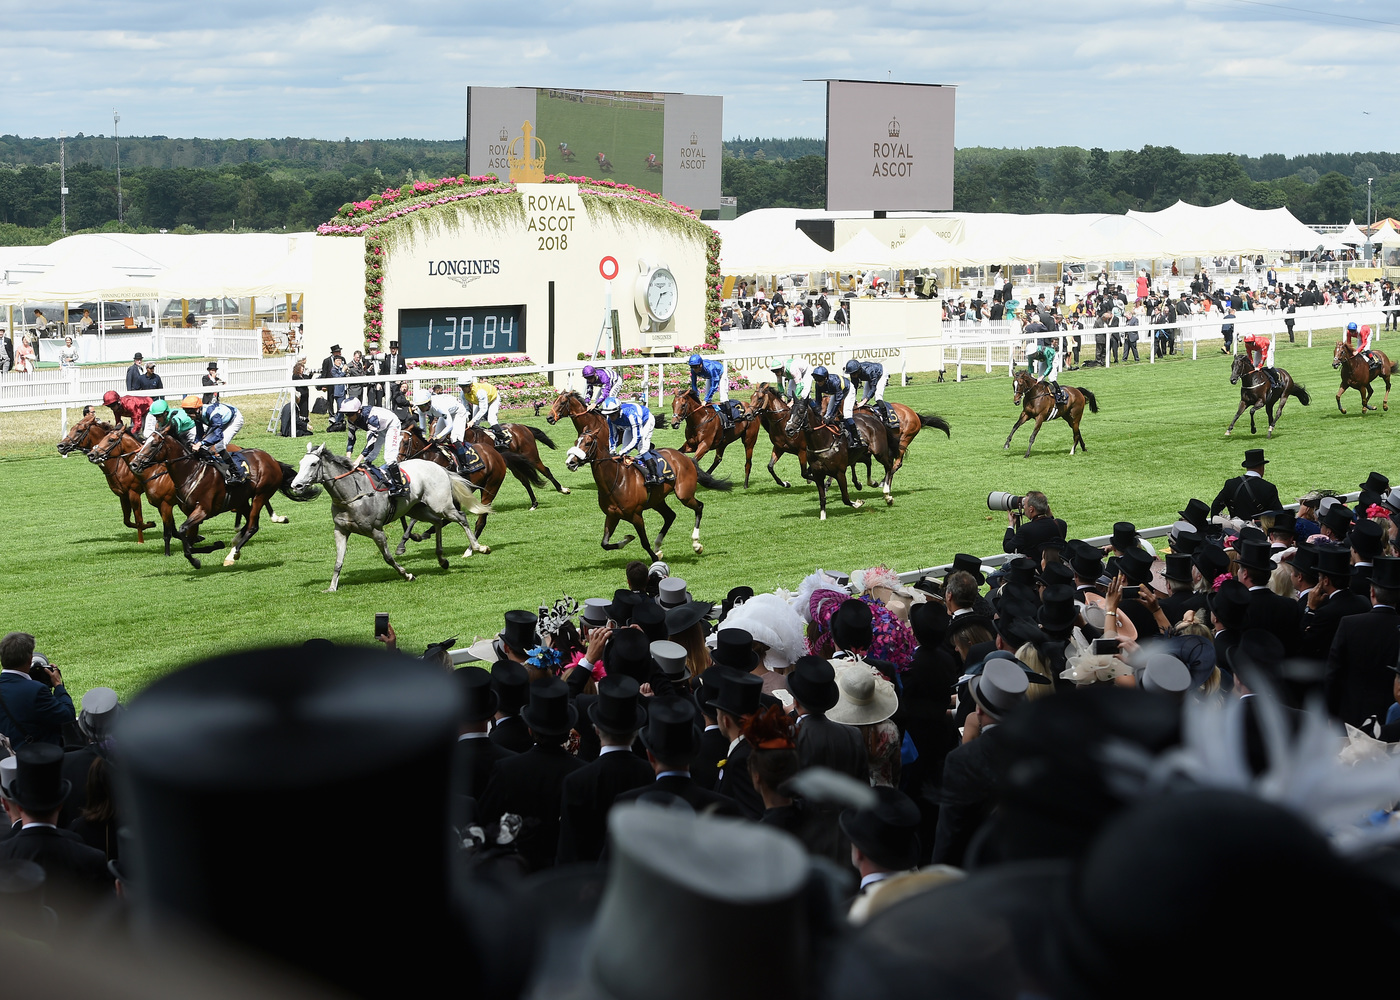 Longines Flat Racing Event: An elegant race day at Royal Ascot with  Longines Ambassador of Elegance Eddie Peng 11